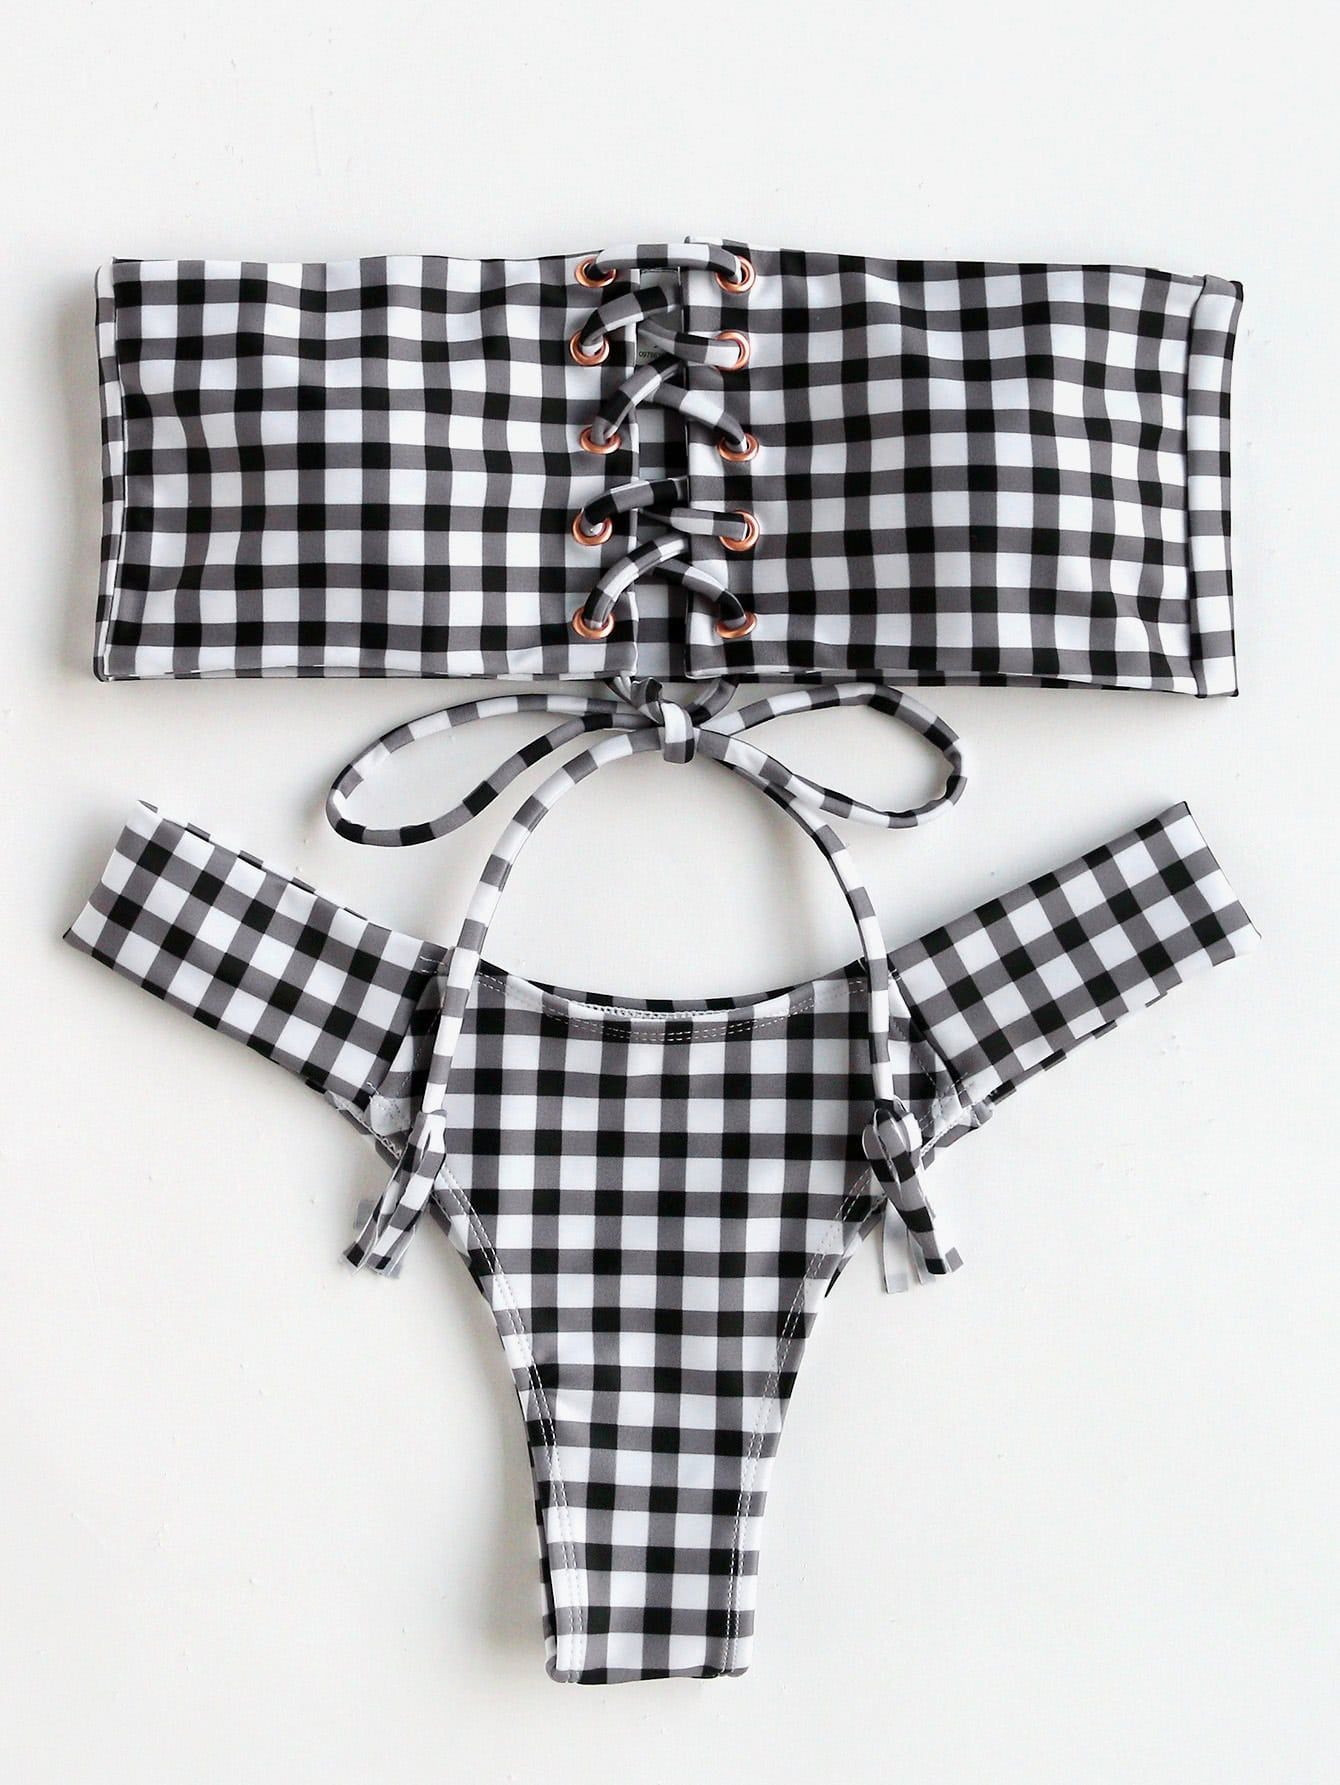 Lace Up Gingham Print Bandeau Bikini Set набор буров hammer flex 201 902 dr sds набор no2 5 6 8 x 110 6 8 10 x 160 6шт